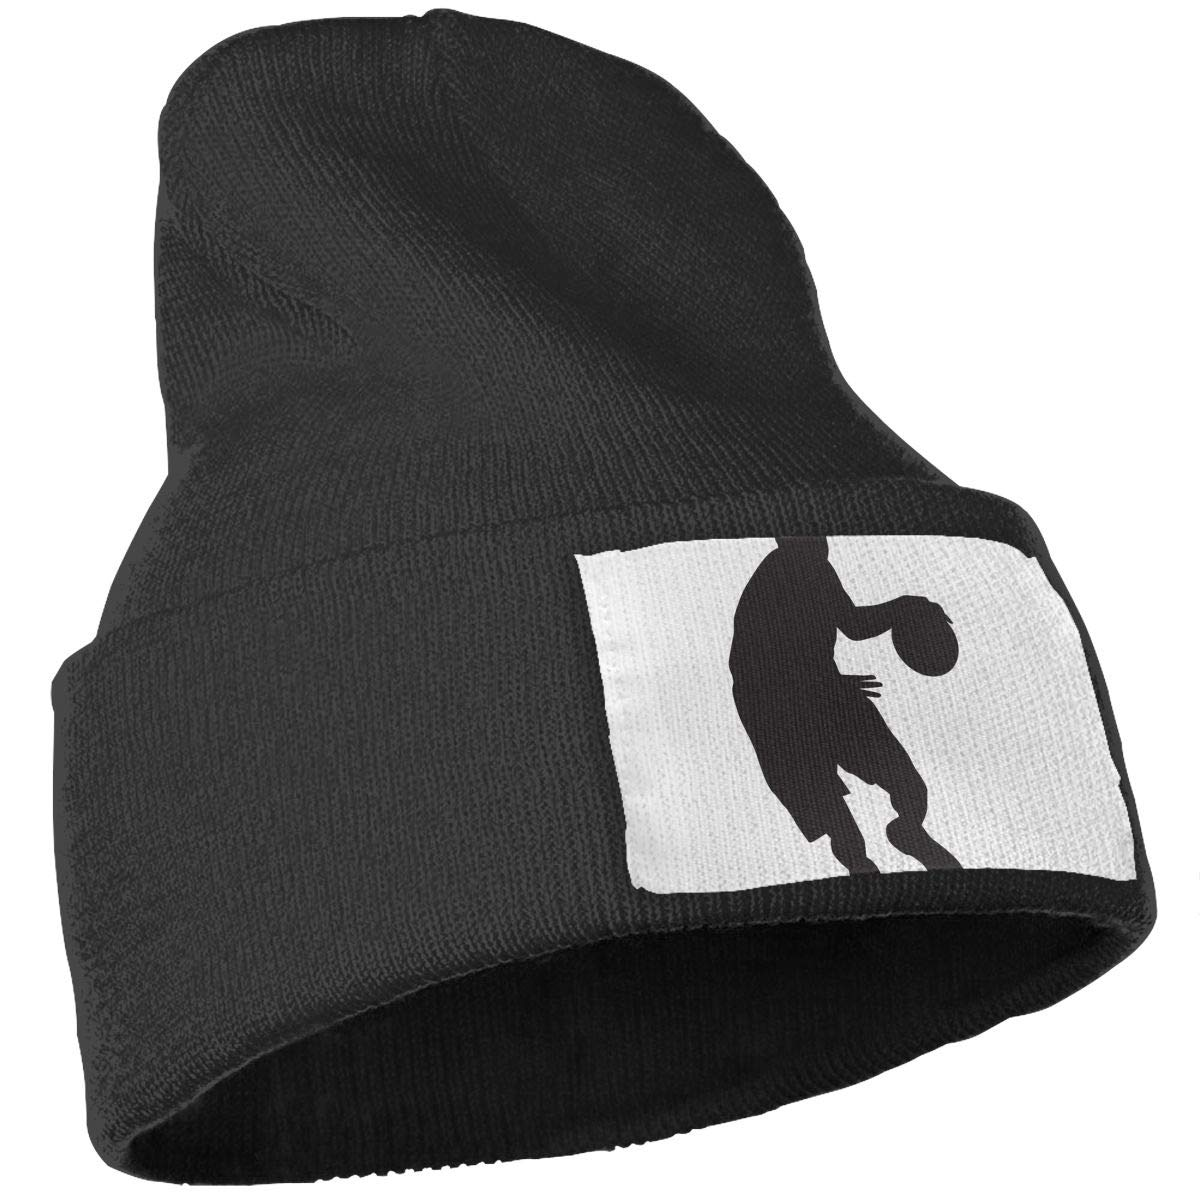 I Love Basketball Unisex Fashion Knitted Hat Luxury Hip-Hop Cap